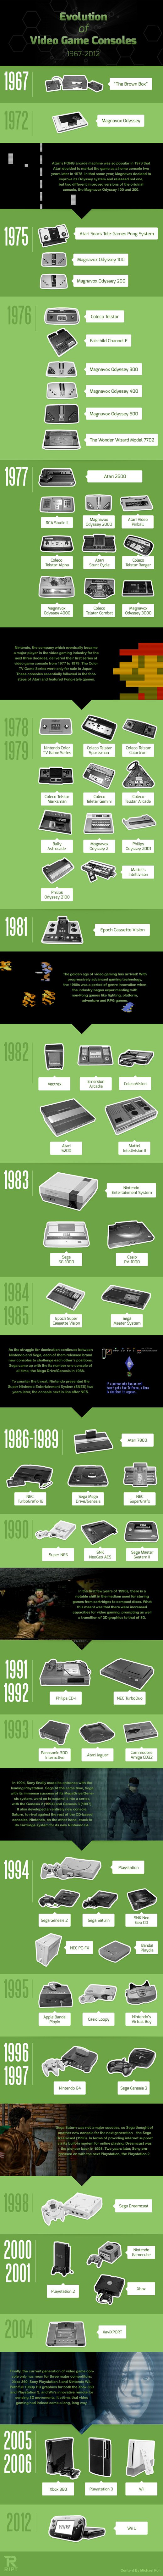 Vamers - FYI - Gadgetology - Evolution of Video Game Consoles